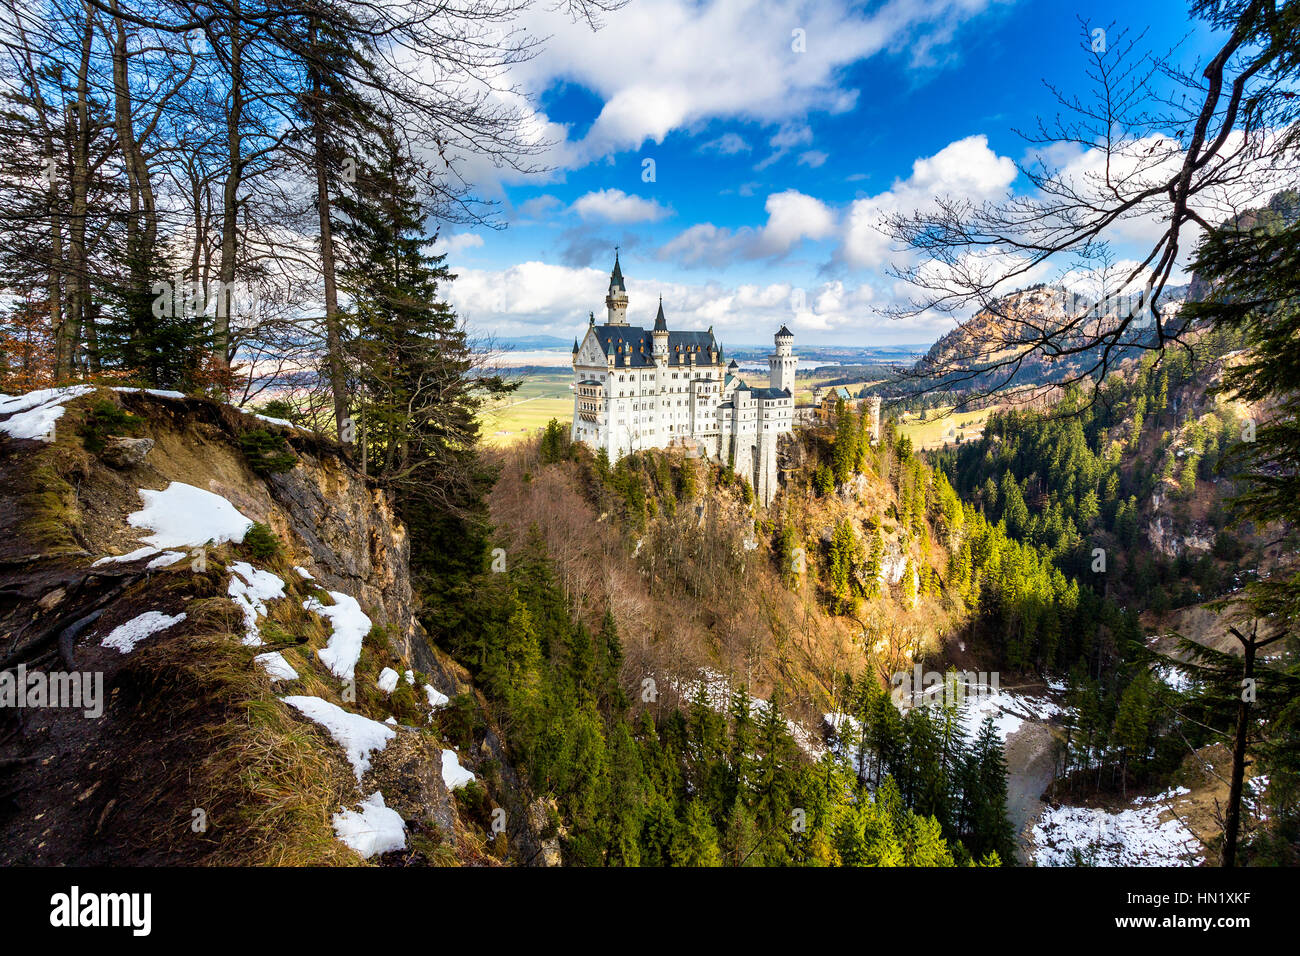 Neuschwanstein Castle the famous castle in Germany located in Fussen, Bavaria, Germany - Stock Image